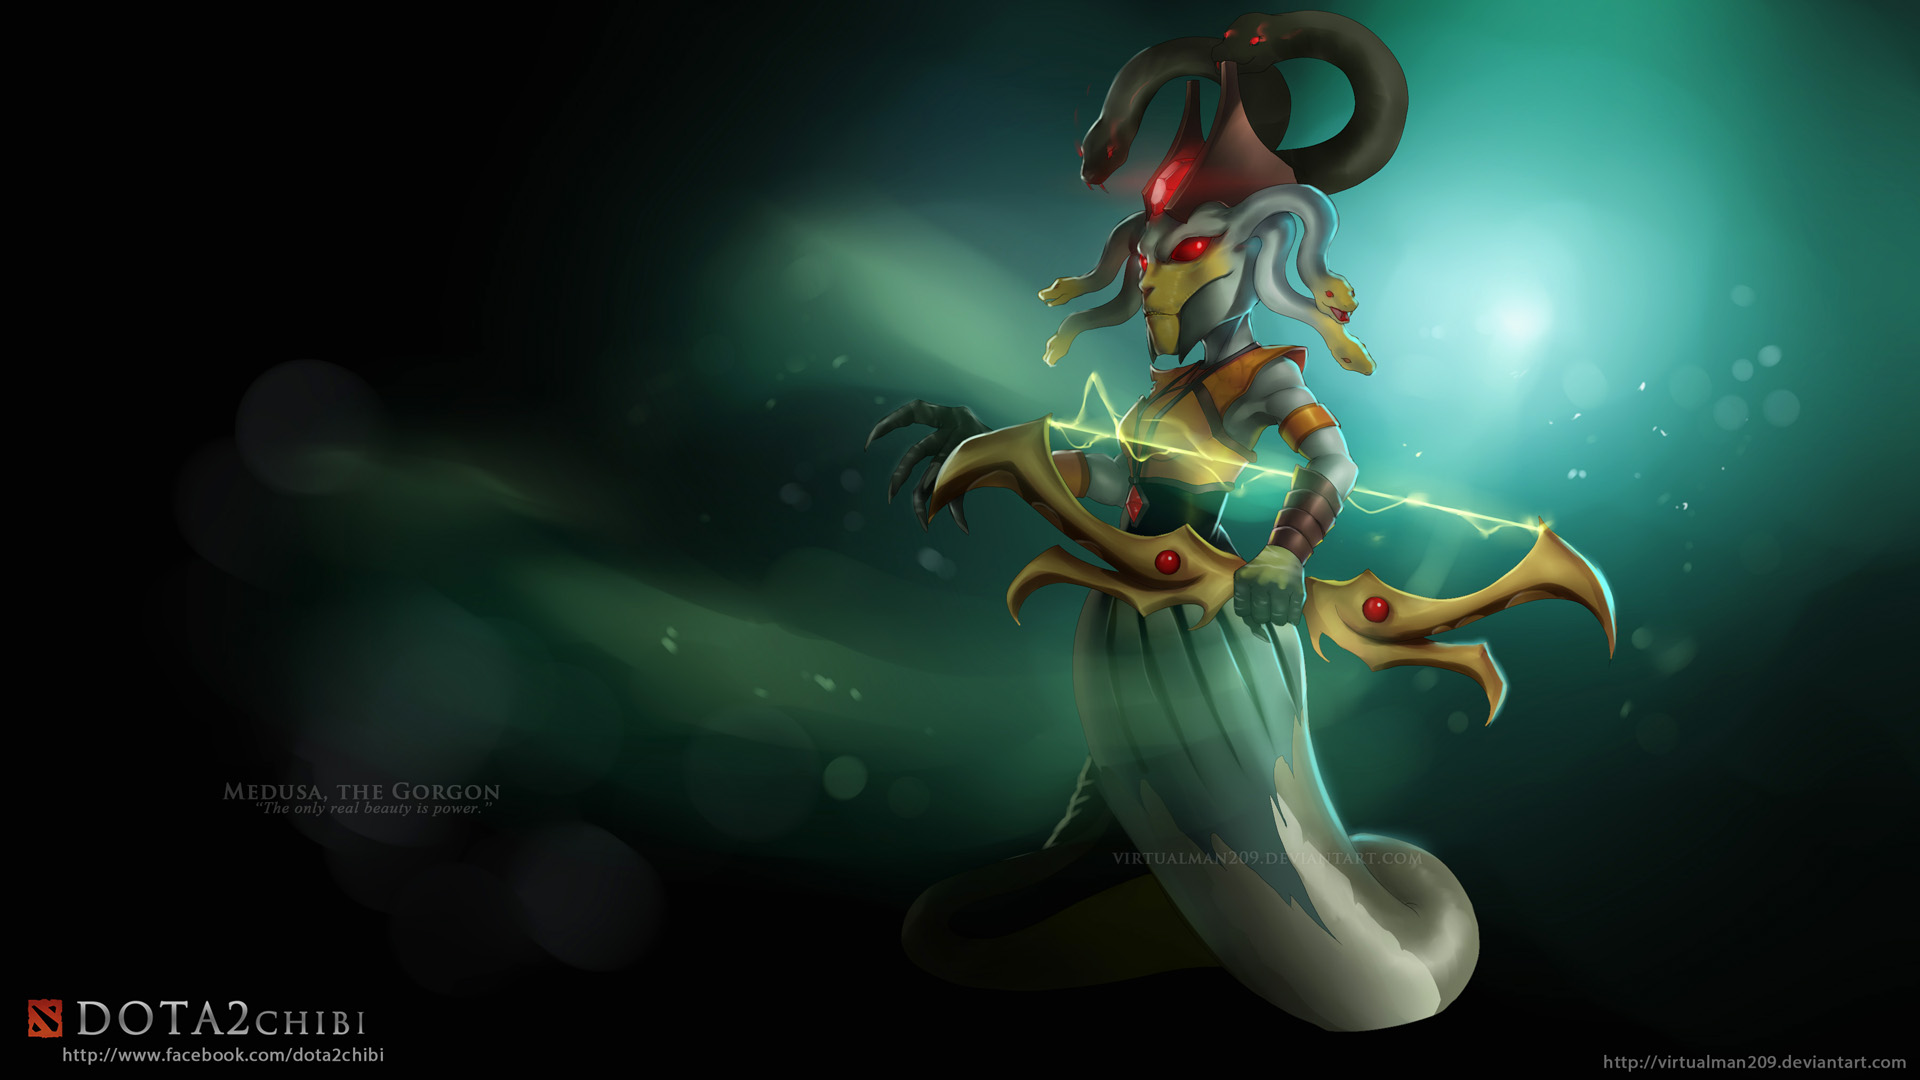 Dota 2 Chibi Medusa 6h Wallpaper - 200.5KB